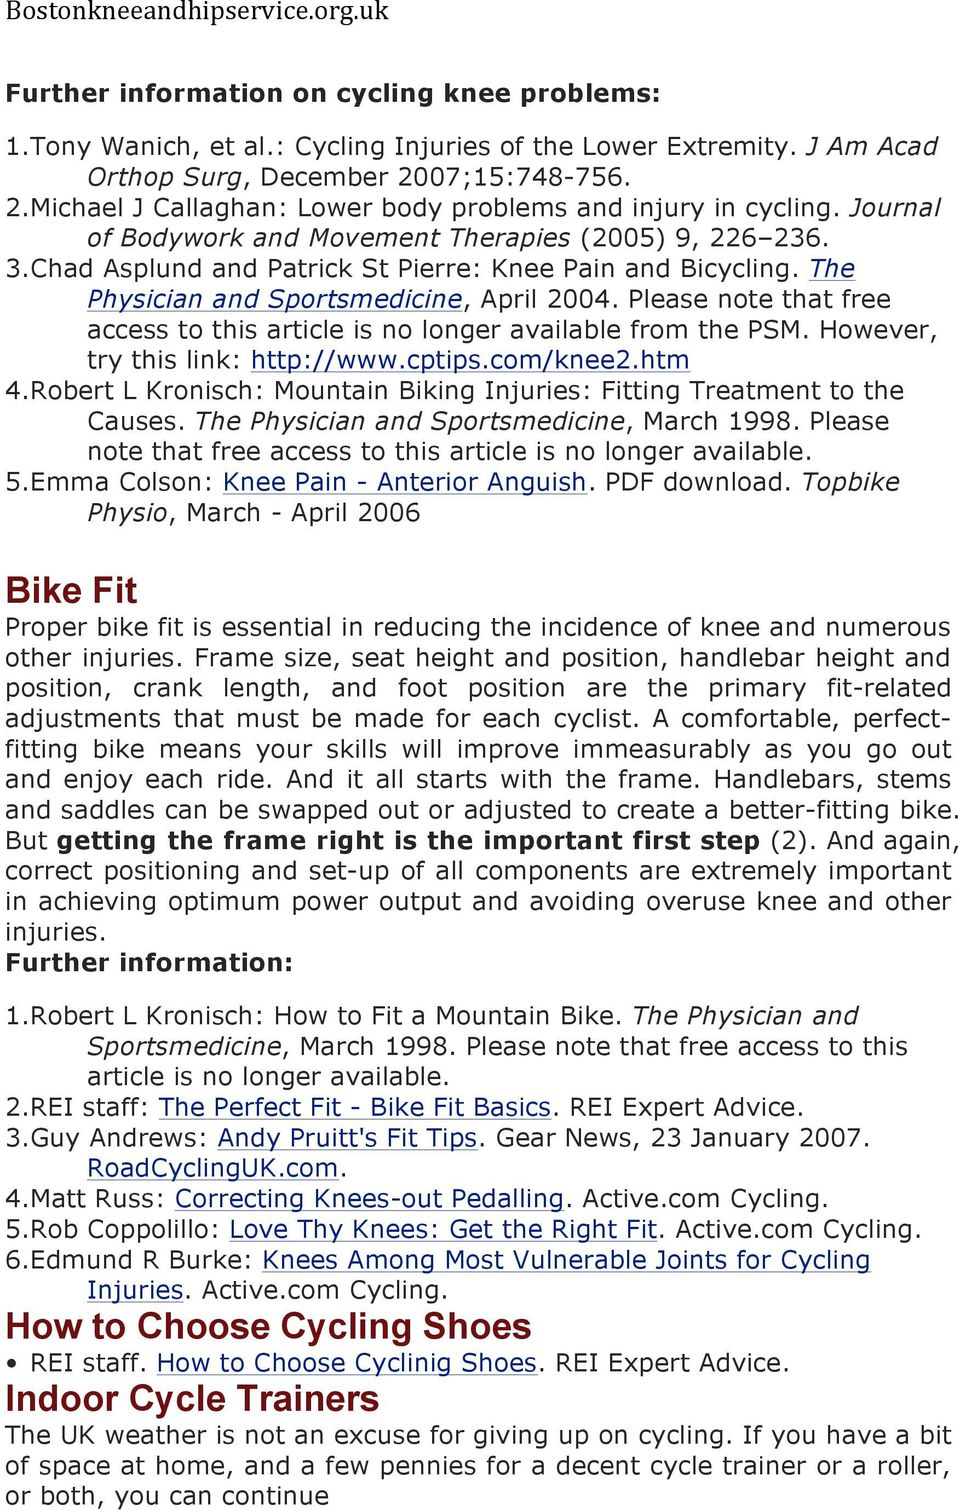 Chad Asplund and Patrick St Pierre: Knee Pain and Bicycling. The Physician and Sportsmedicine, April 2004. Please note that free access to this article is no longer available from the PSM.